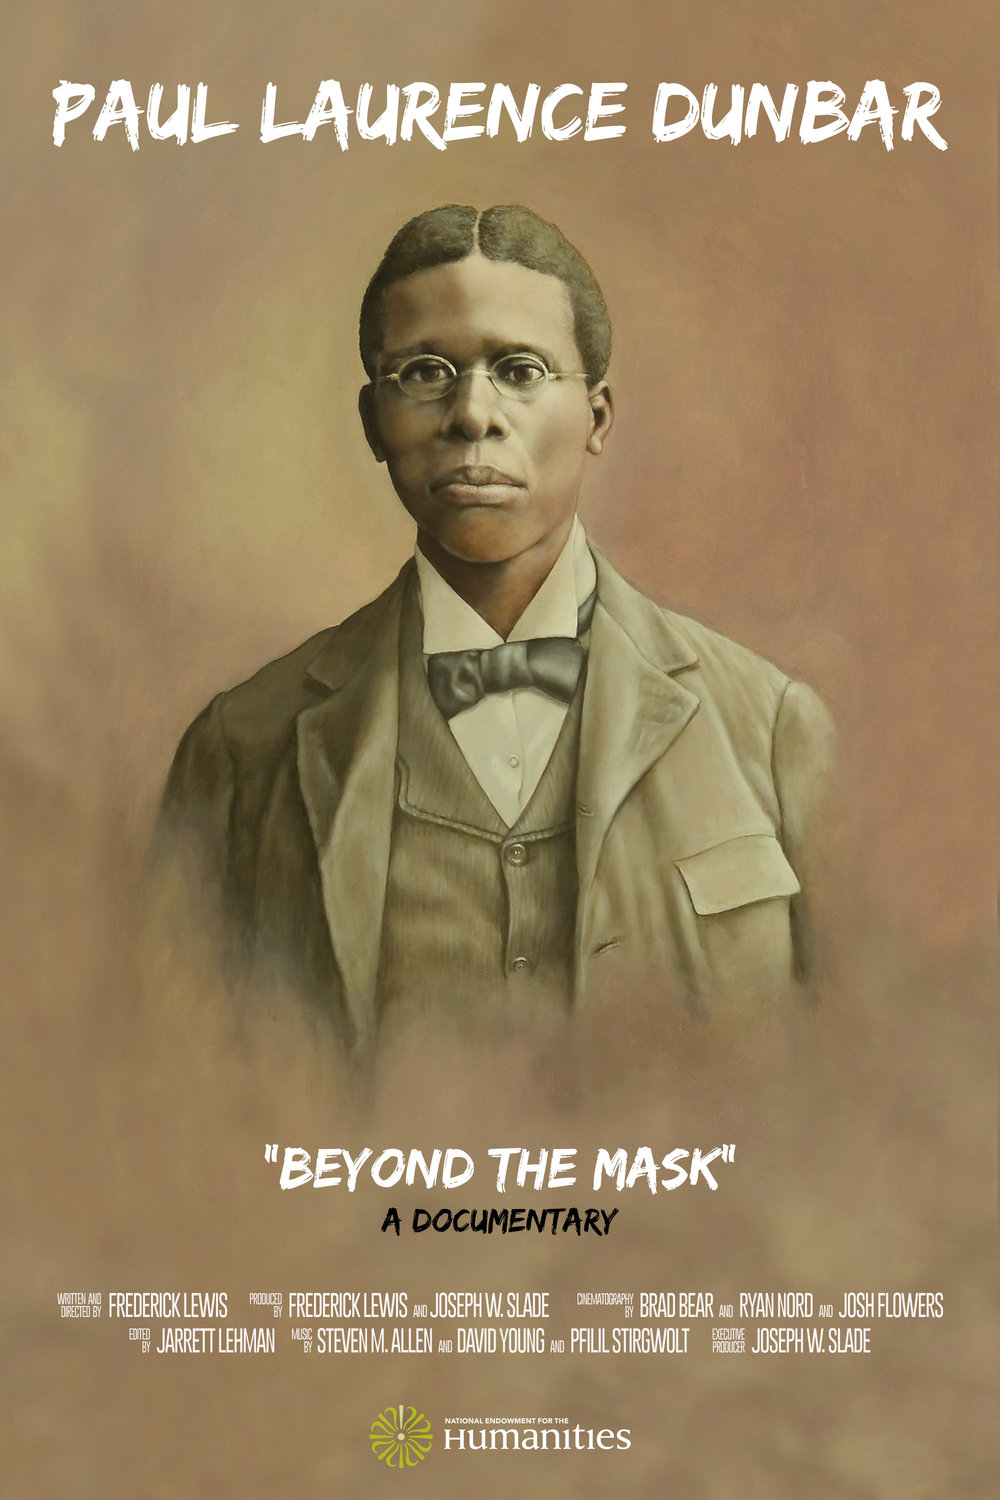 Paul Laurence Dunbar: Beyond the Mask Director: Frederick Lewis Distribution: Nationally-syndicated on PBS -